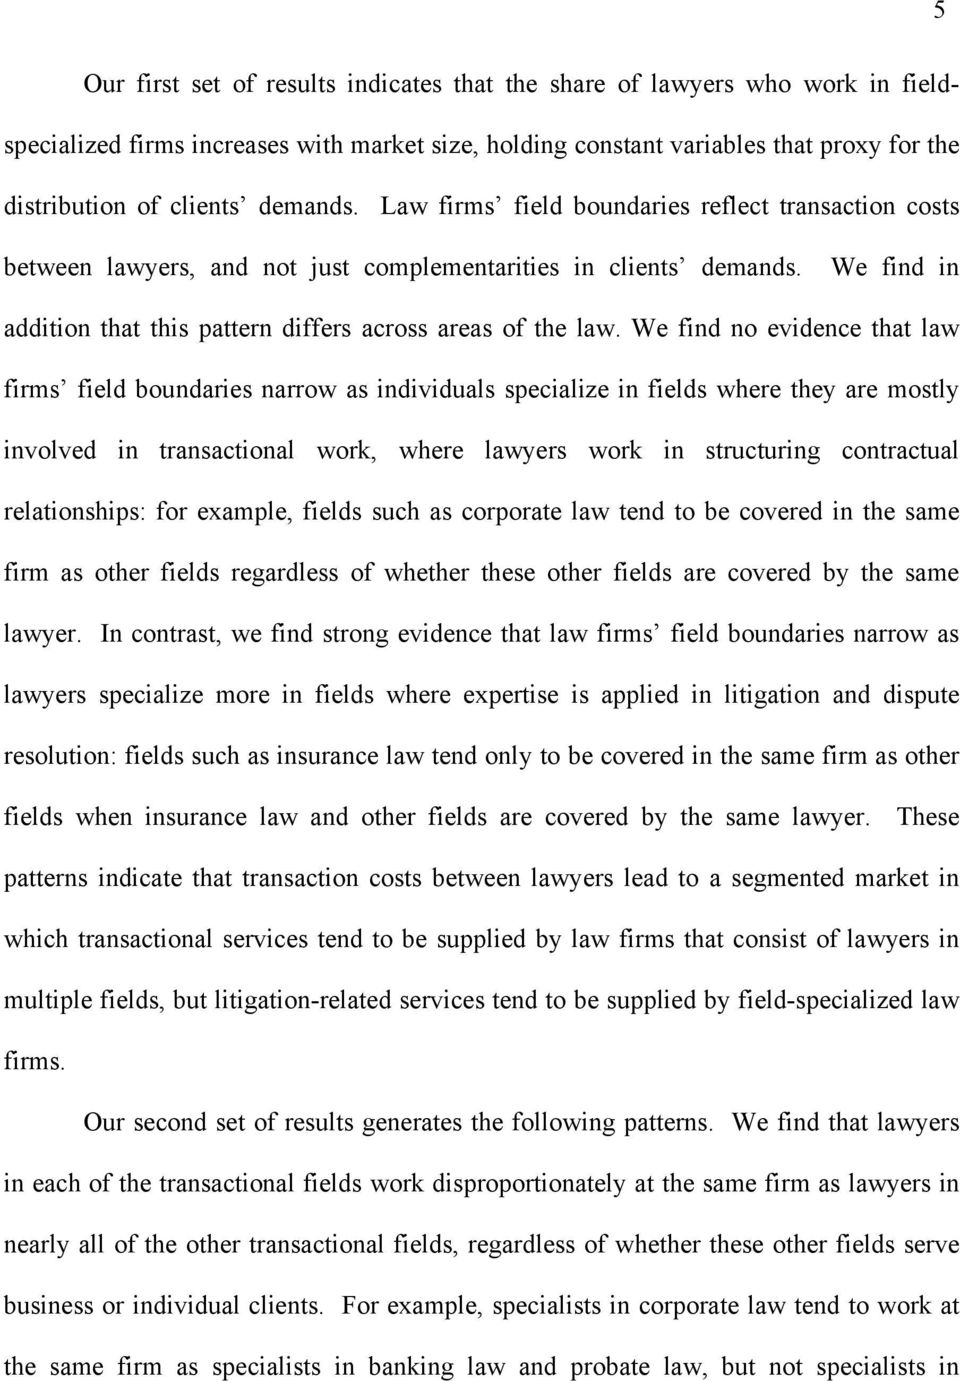 We find no evidence that law firms field boundaries narrow as individuals specialize in fields where they are mostly involved in transactional work, where lawyers work in structuring contractual